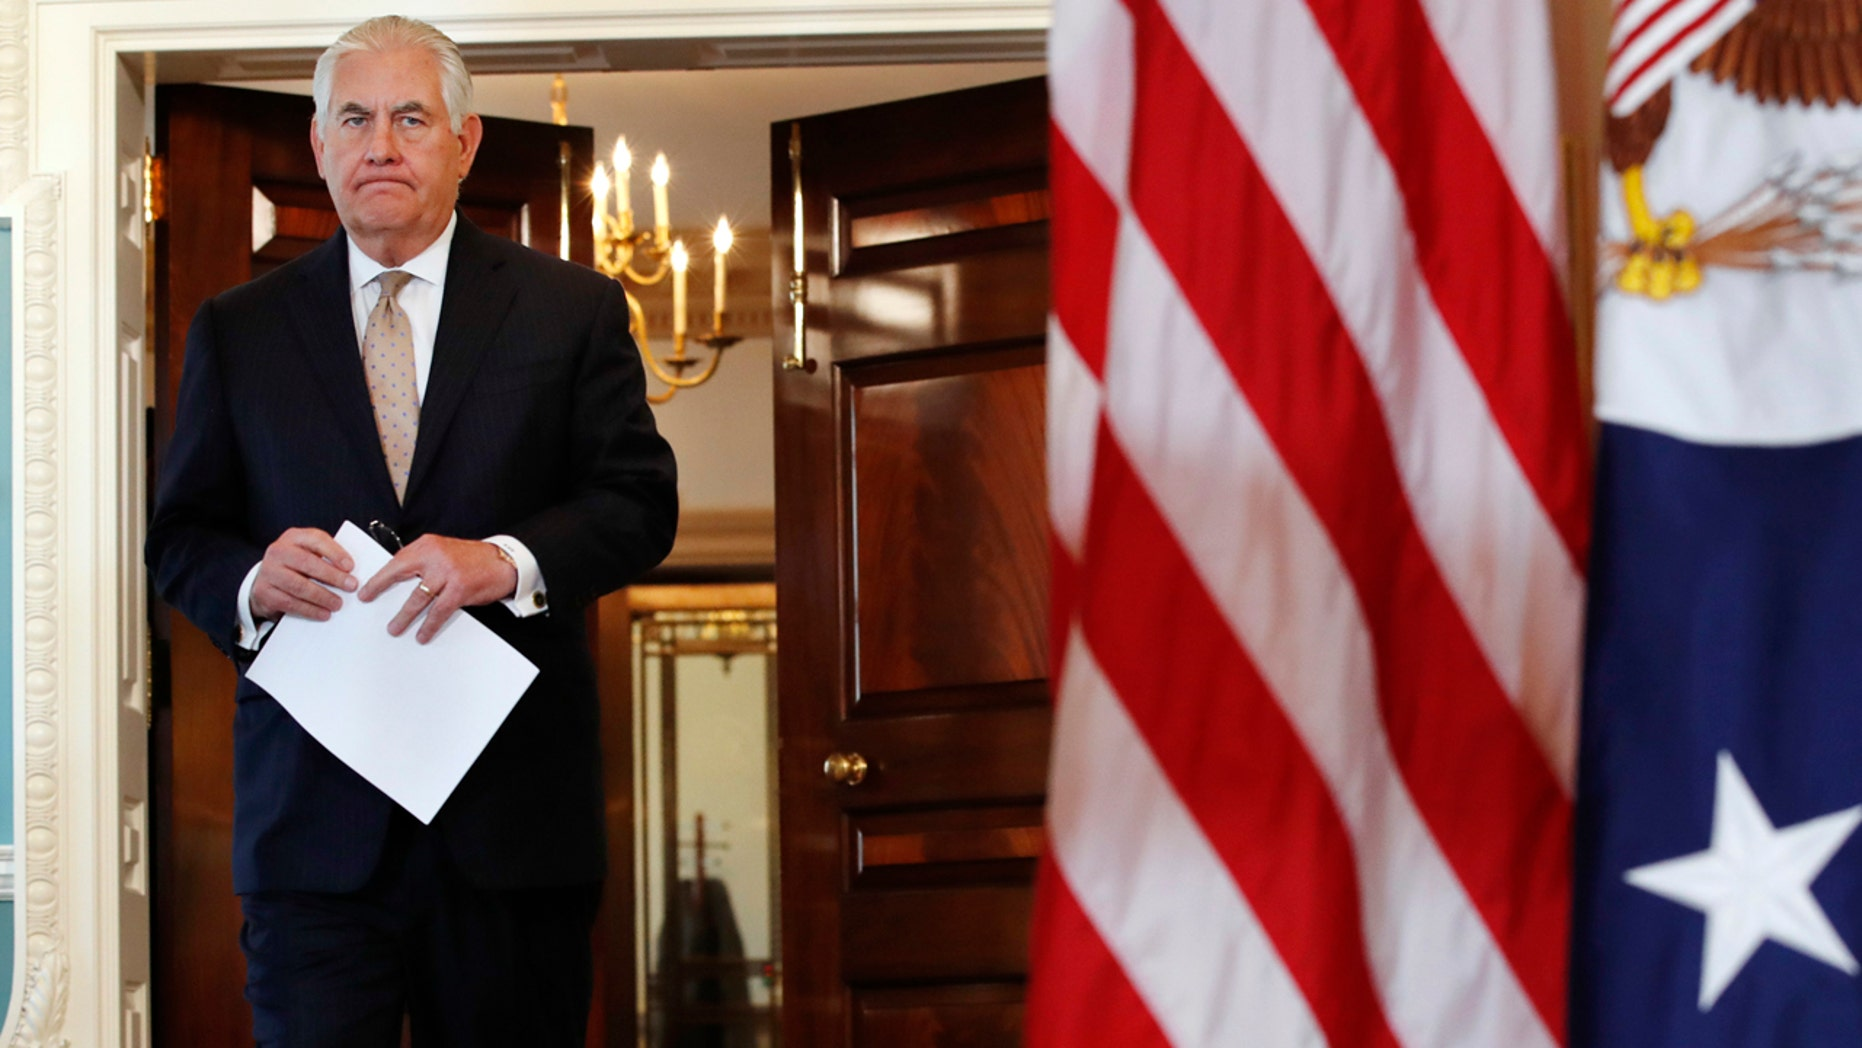 Secretary of State Rex Tillerson walks in to a news conference to speak about Qatar at the State Department in Washington, Friday June 9, 2017. Tillerson is calling on Saudi Arabia, Egypt, the United Arab Emirates and Bahrain to immediately ease their blockade on Qatar.   (AP Photo/Jacquelyn Martin)